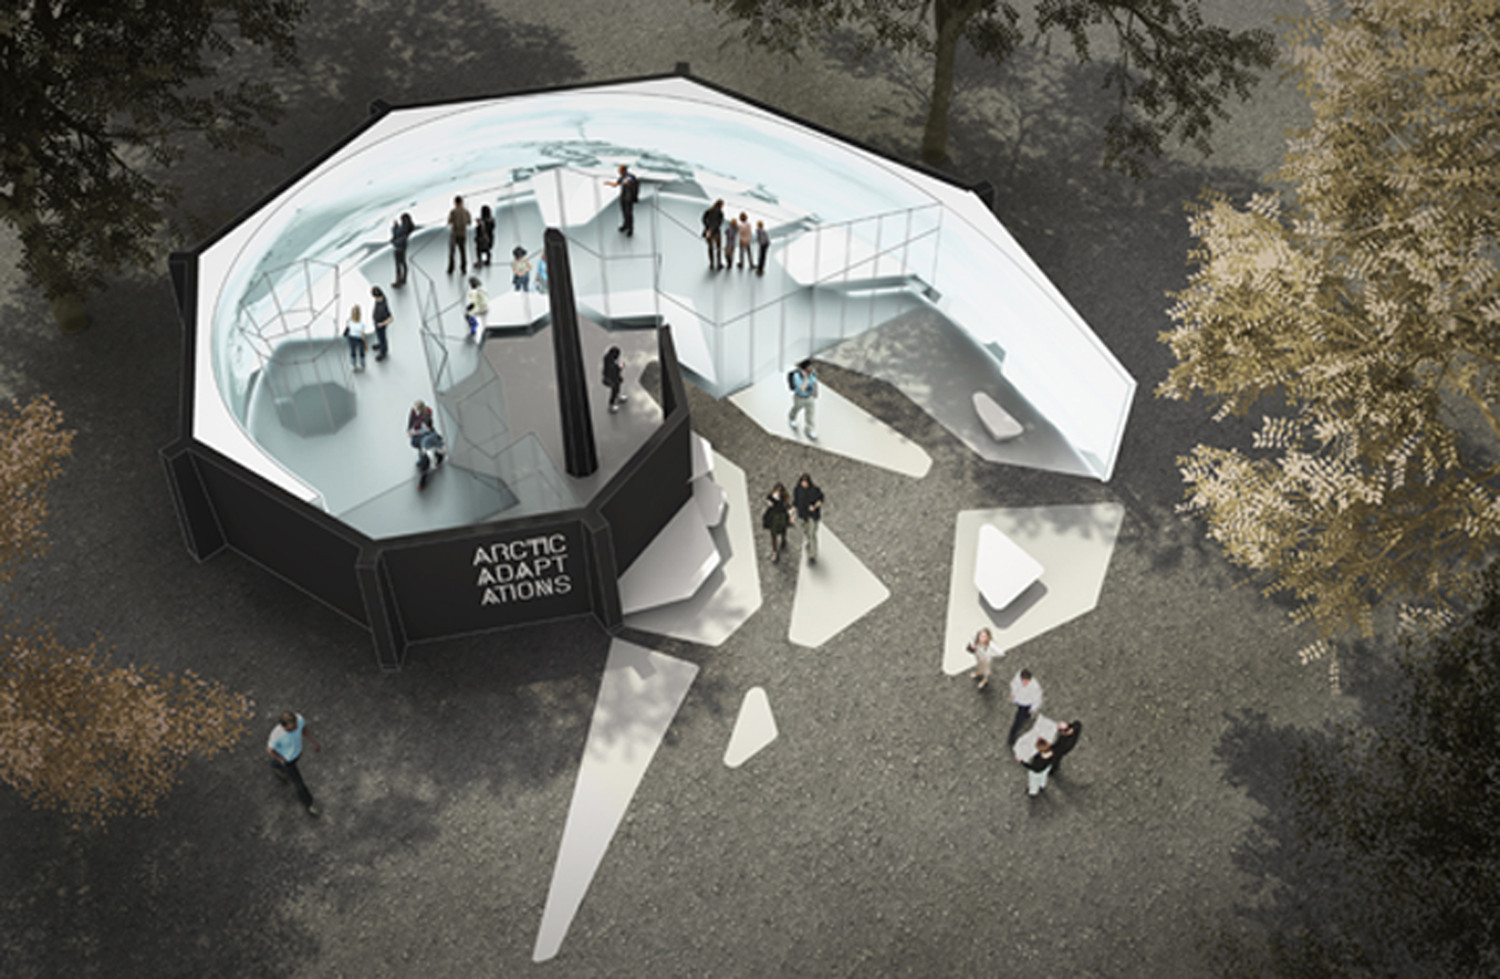 Venice Biennale 2014: Lateral Office to Represent Canada with Nunavut Exhibition , Rendering of Arctic Adaptations exhibition at Venice Pavilion © Lateral Office, 2013